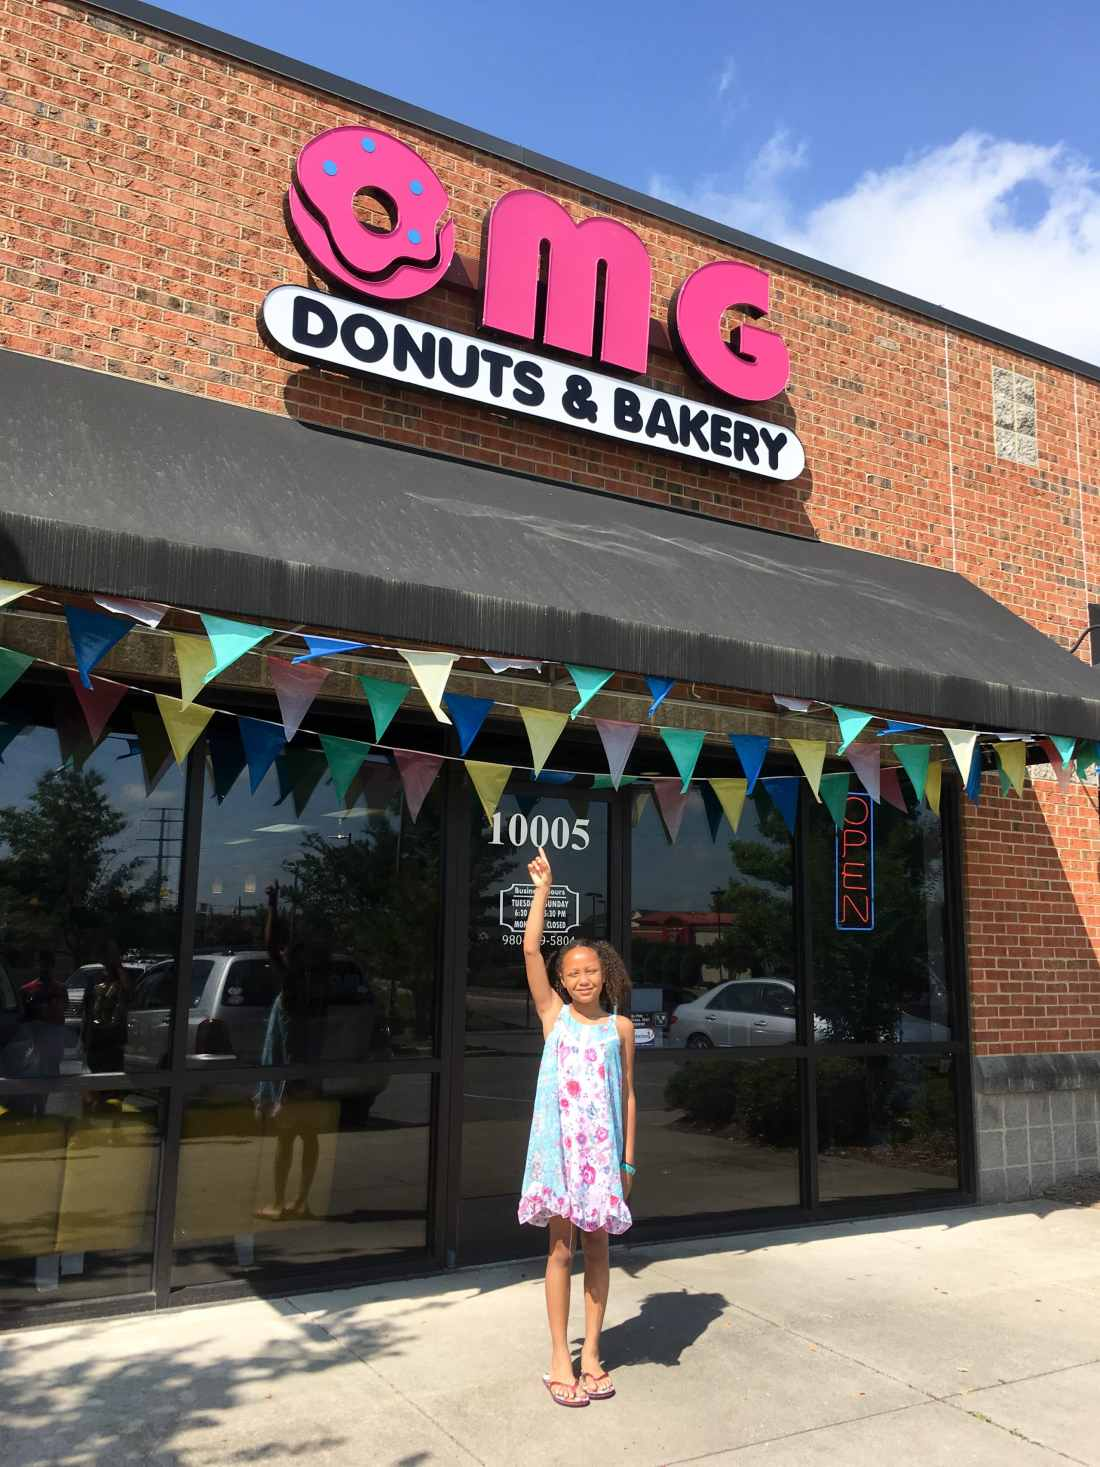 OMG Donuts and Bakery Entrance. OMG Donuts and Bakery Travel Review via - JaysSweetNSourLife.com